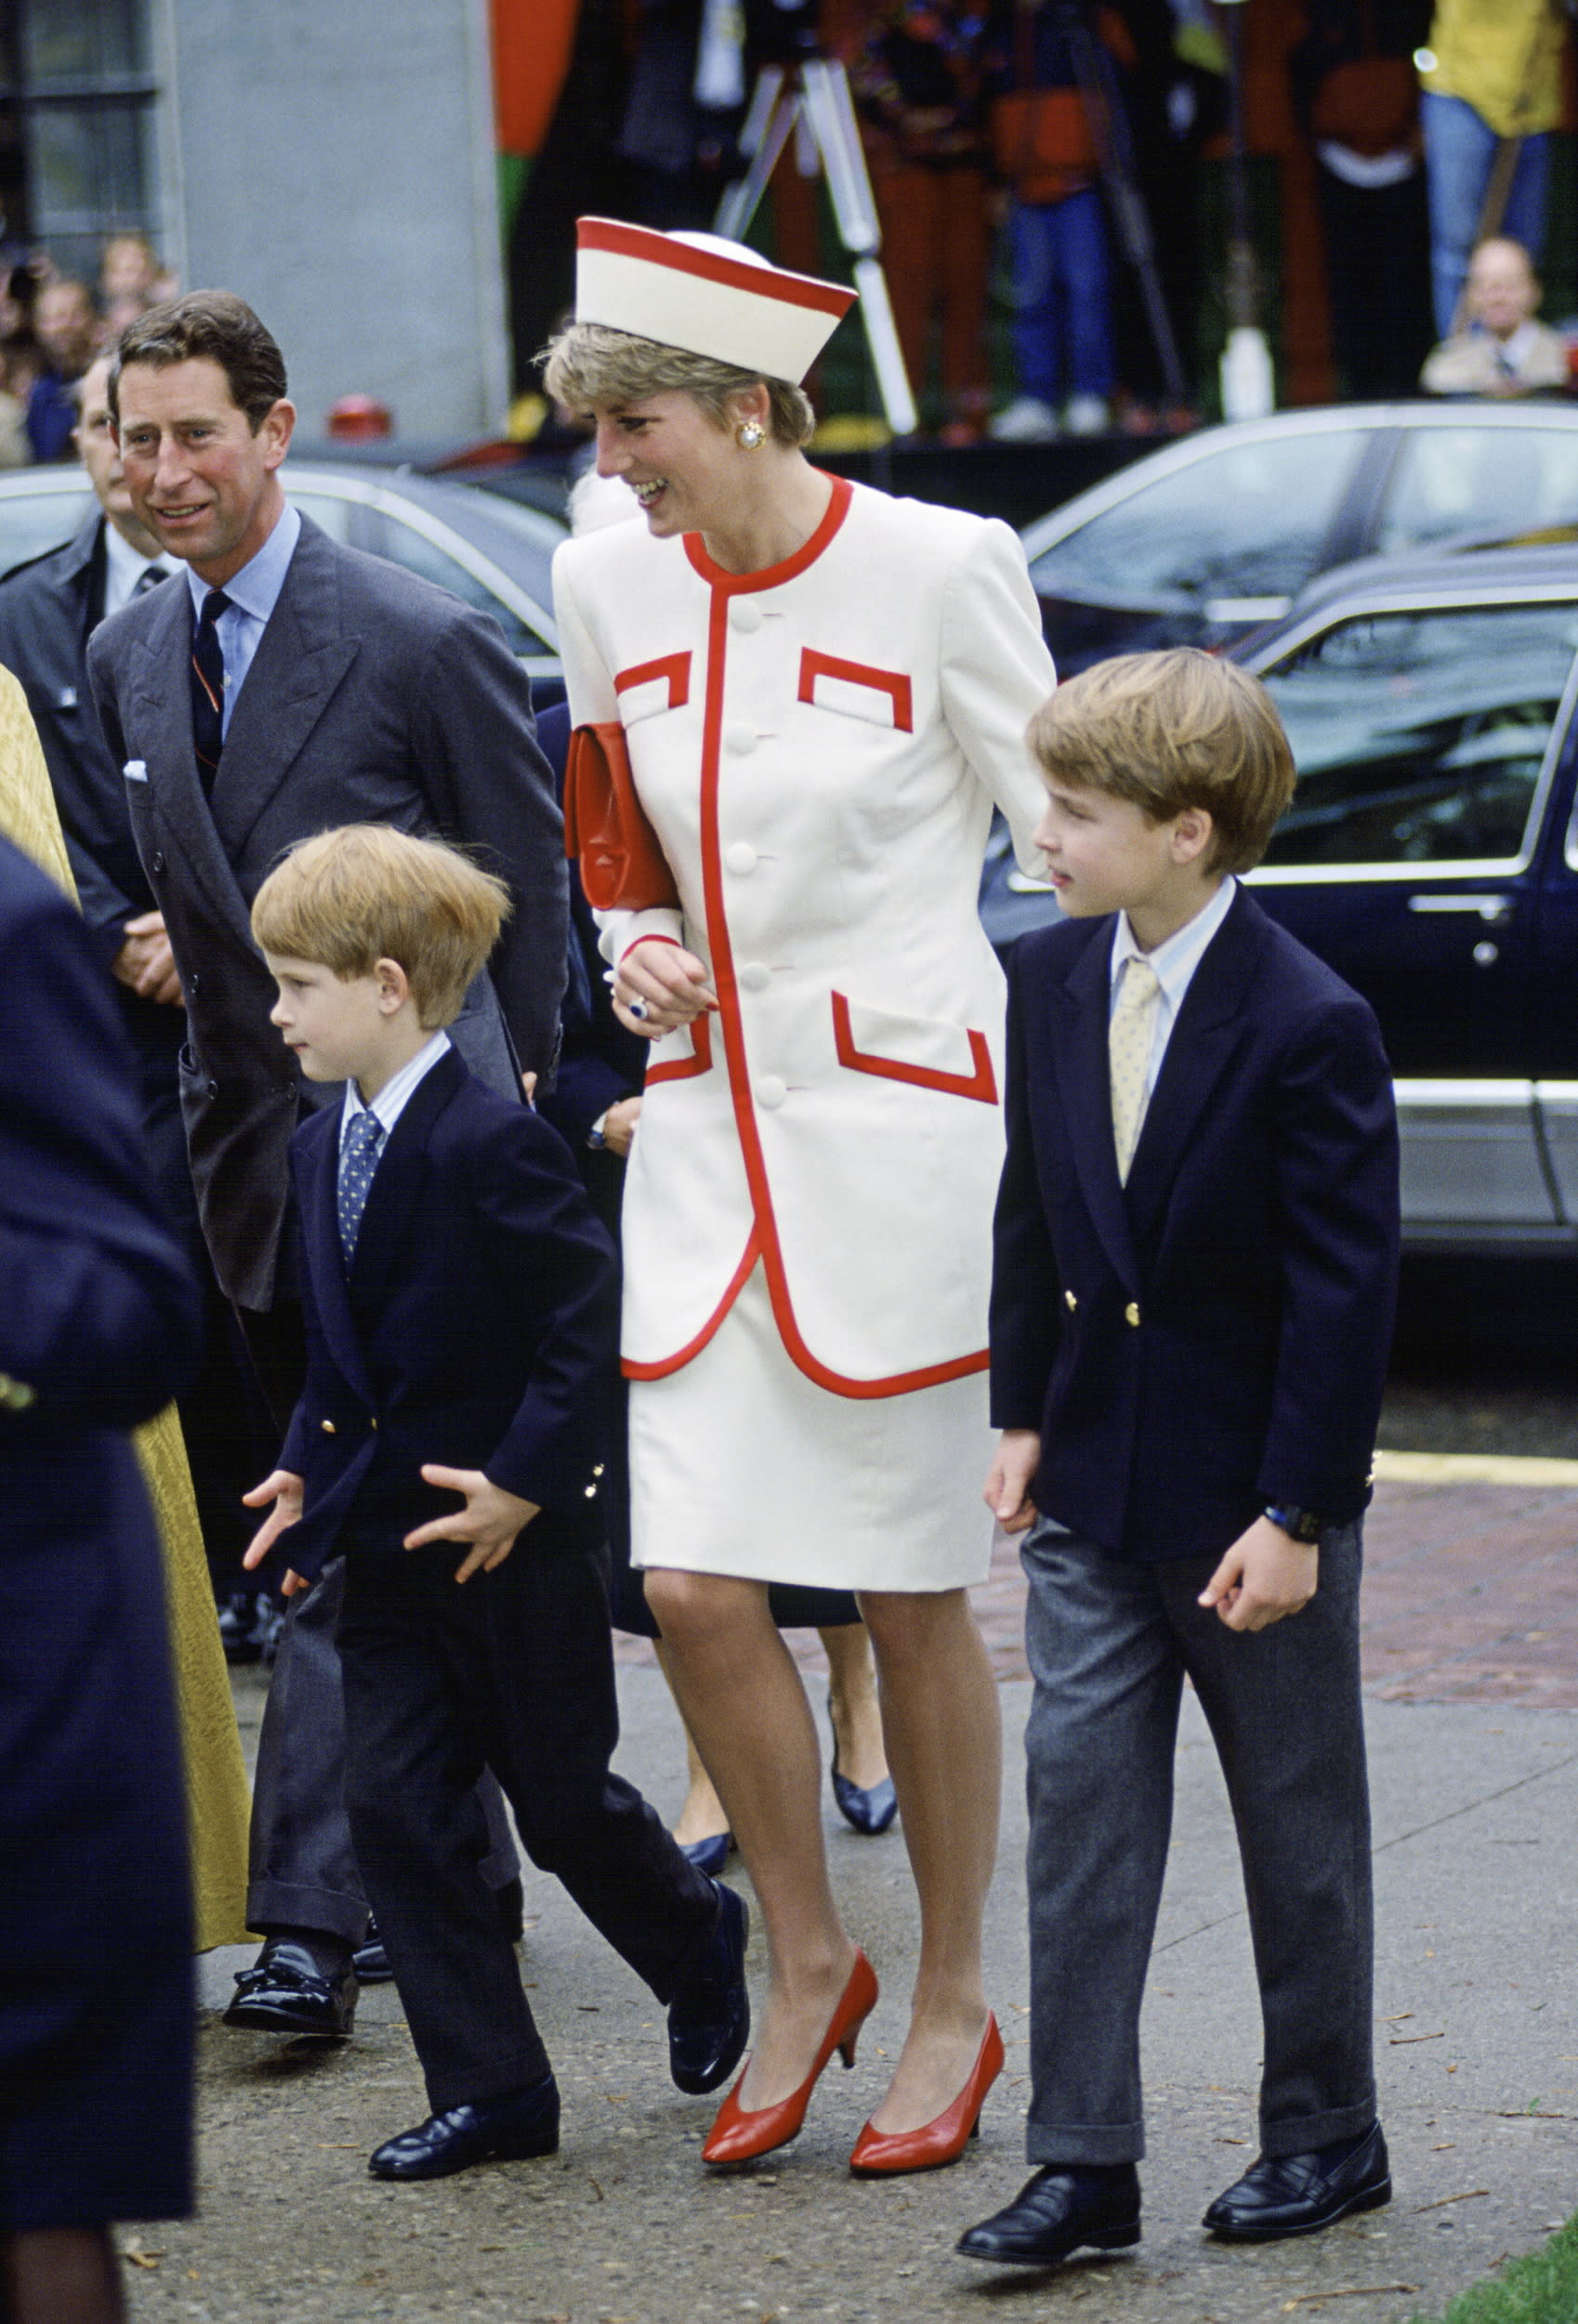 TORONTO, CANADA - OCTOBER 27:  The Prince And Princess Of Wales Visit A Church In Toronto, Canada With Their Two Sons, William And Harry  (Photo by Tim Graham/Getty Images)